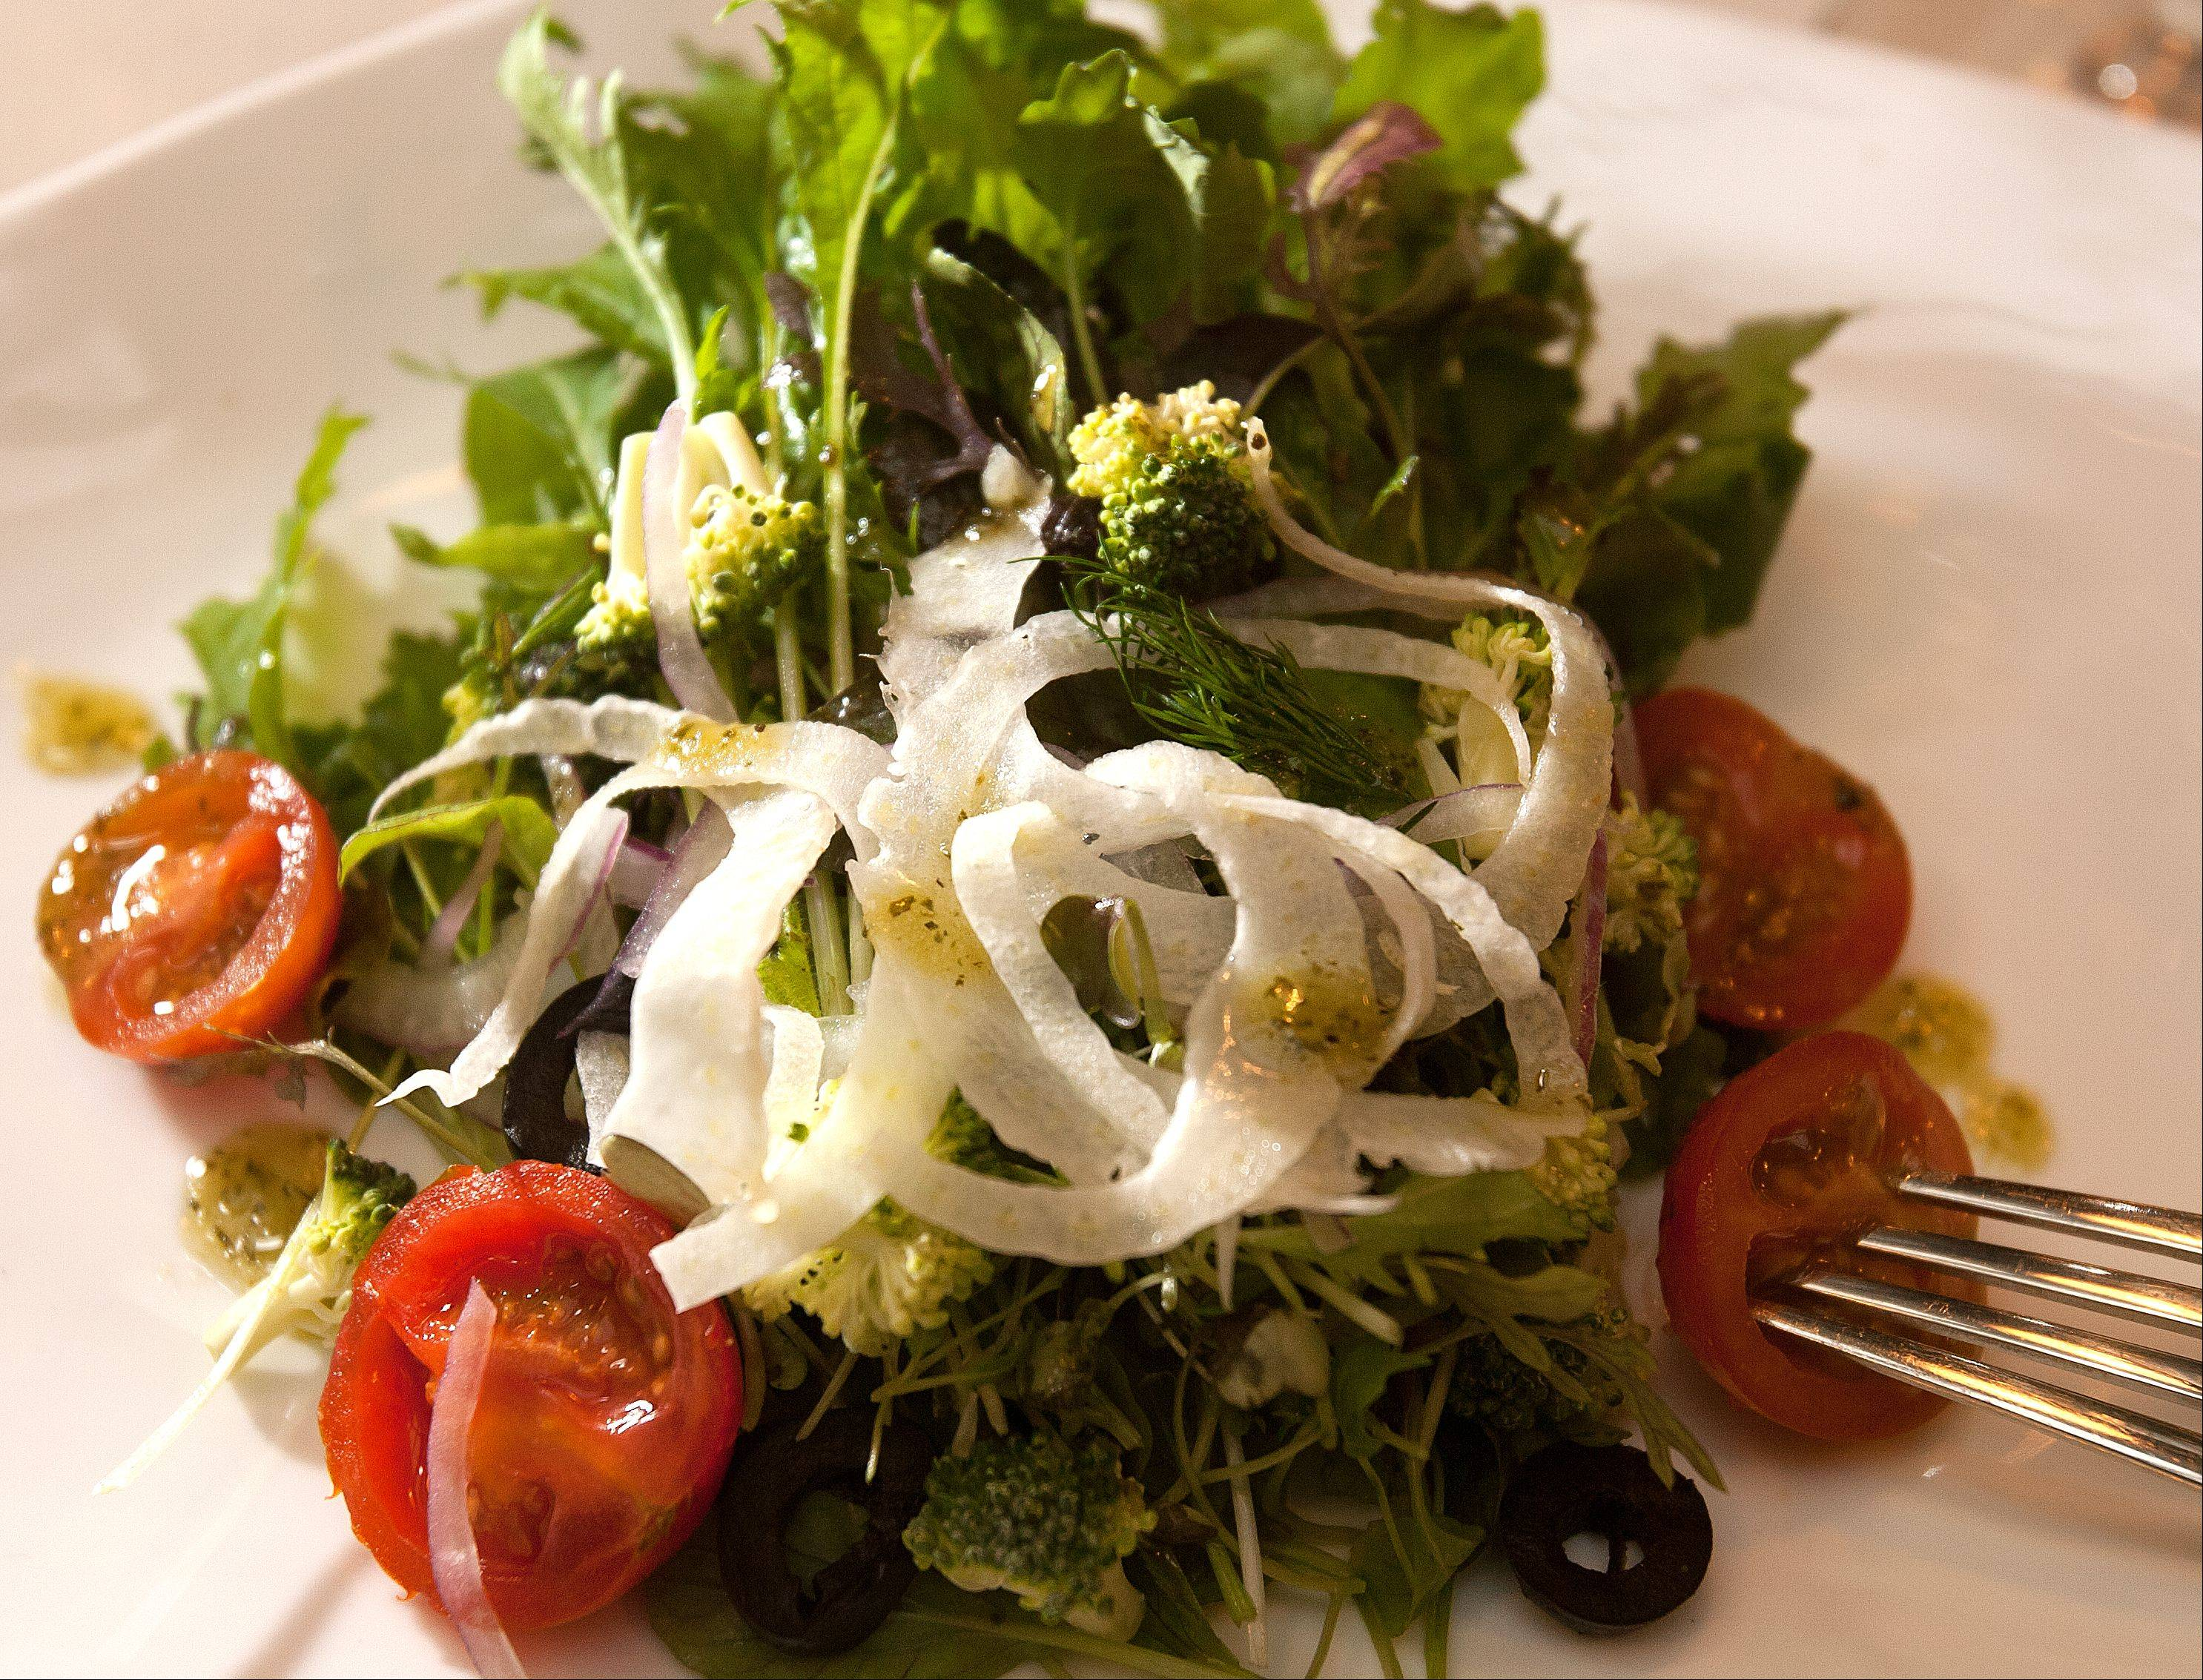 Spring greens get added flavor from fennel, celeriac, onion, broccoli and cherry tomatoes in Artisan Table's harvest salad.